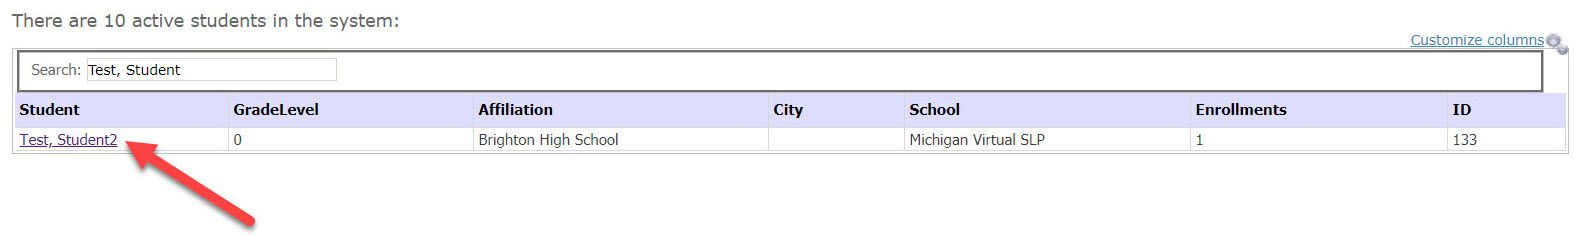 Image of the Students page with an arrow pointing to a test name in the results table.